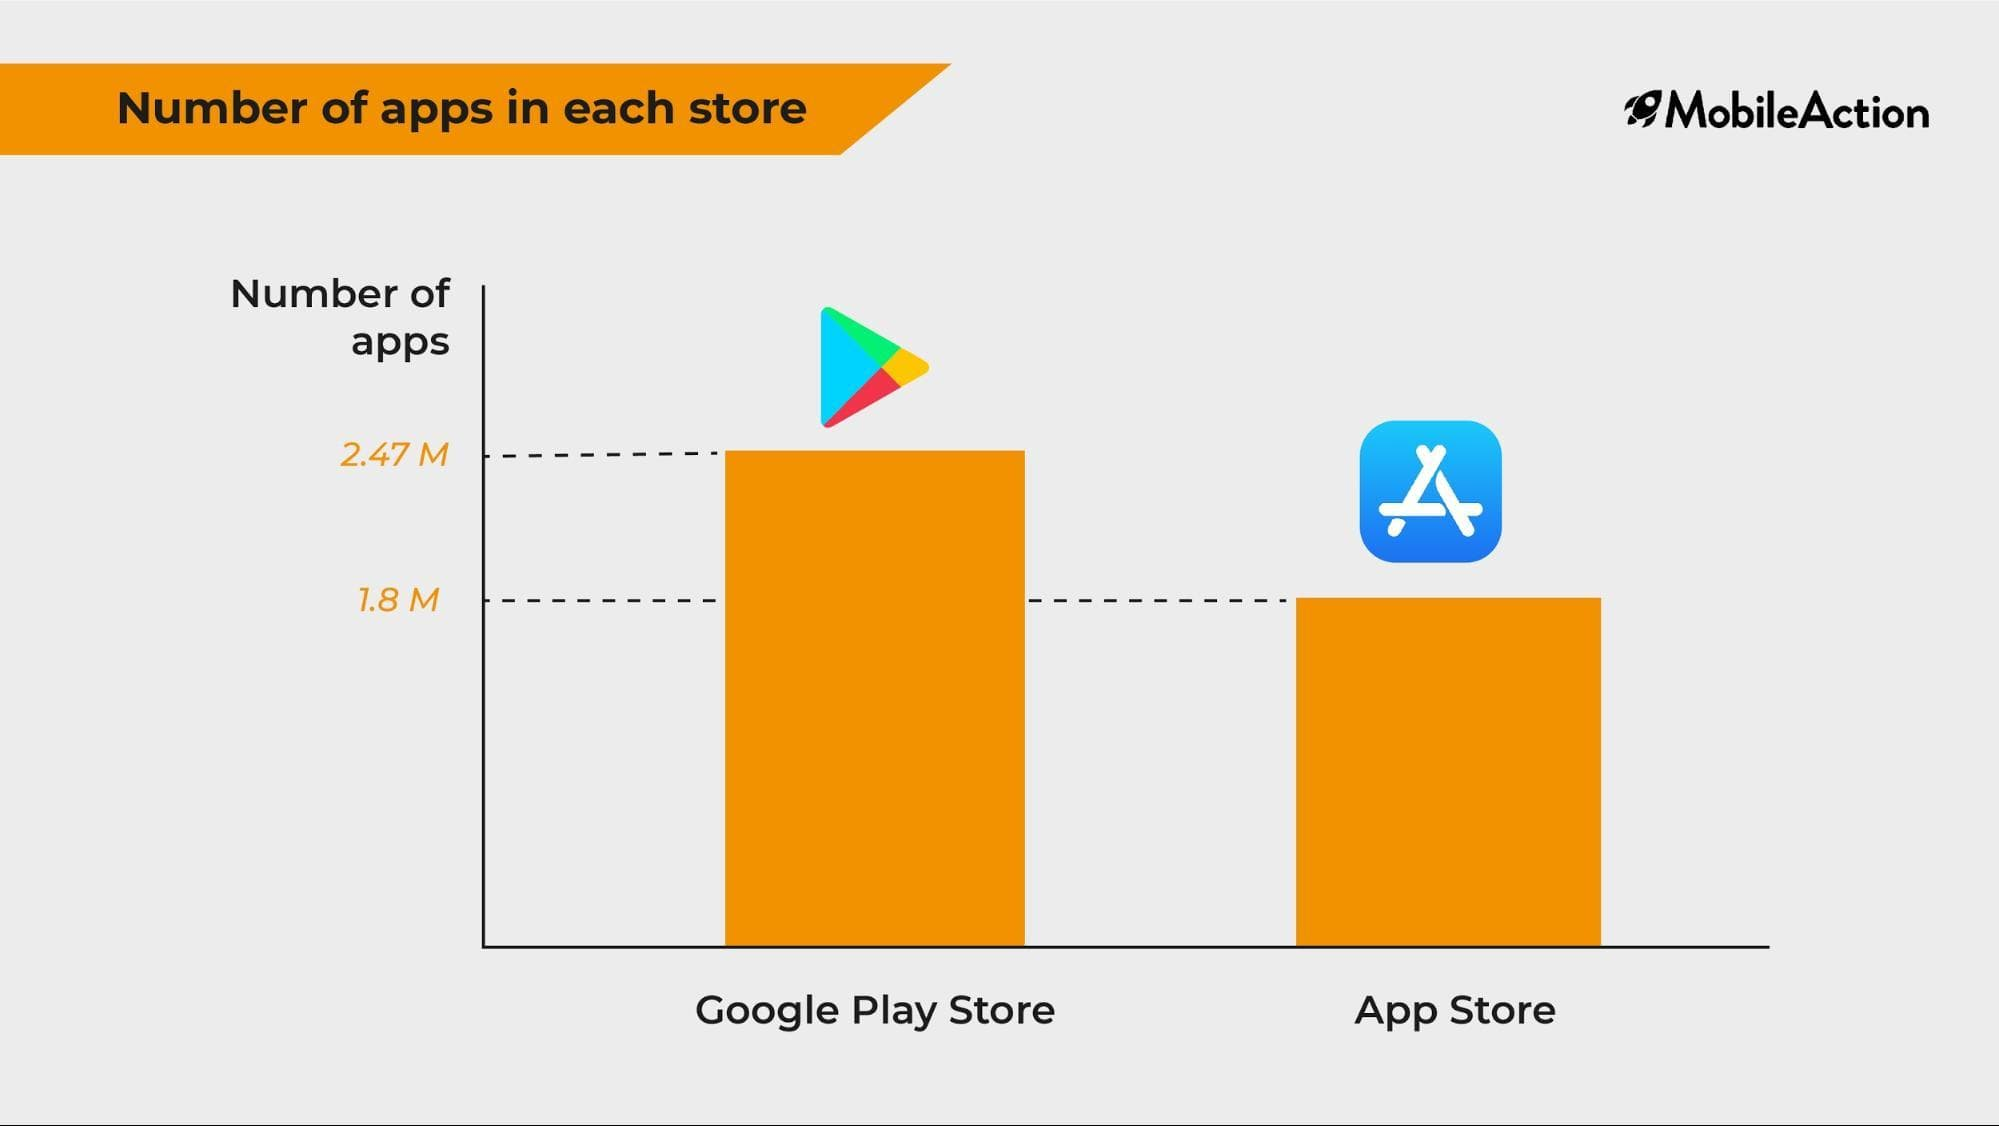 Number of Apps in the App Store and Google Play Store